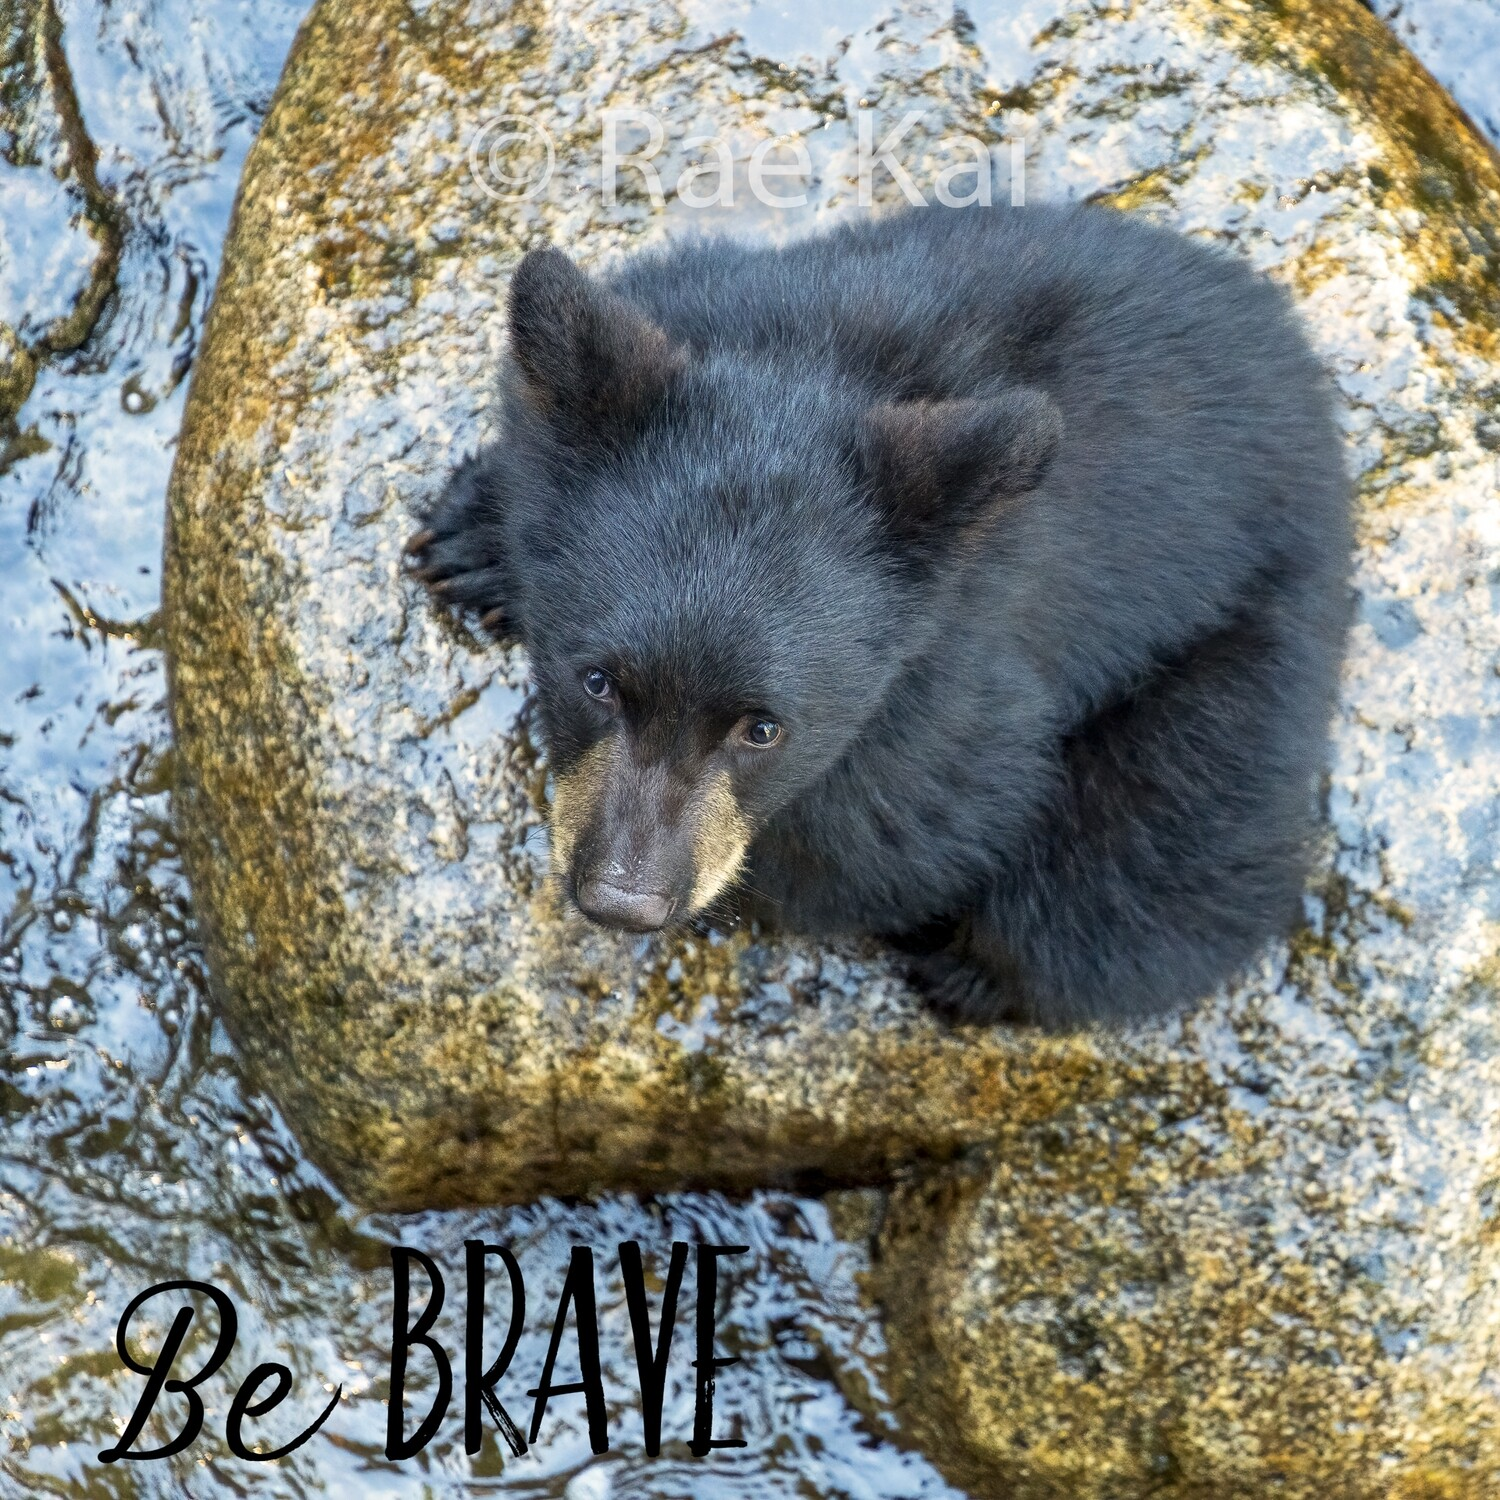 Be Brave (Cub on Rock)-Inspirational Square Photo